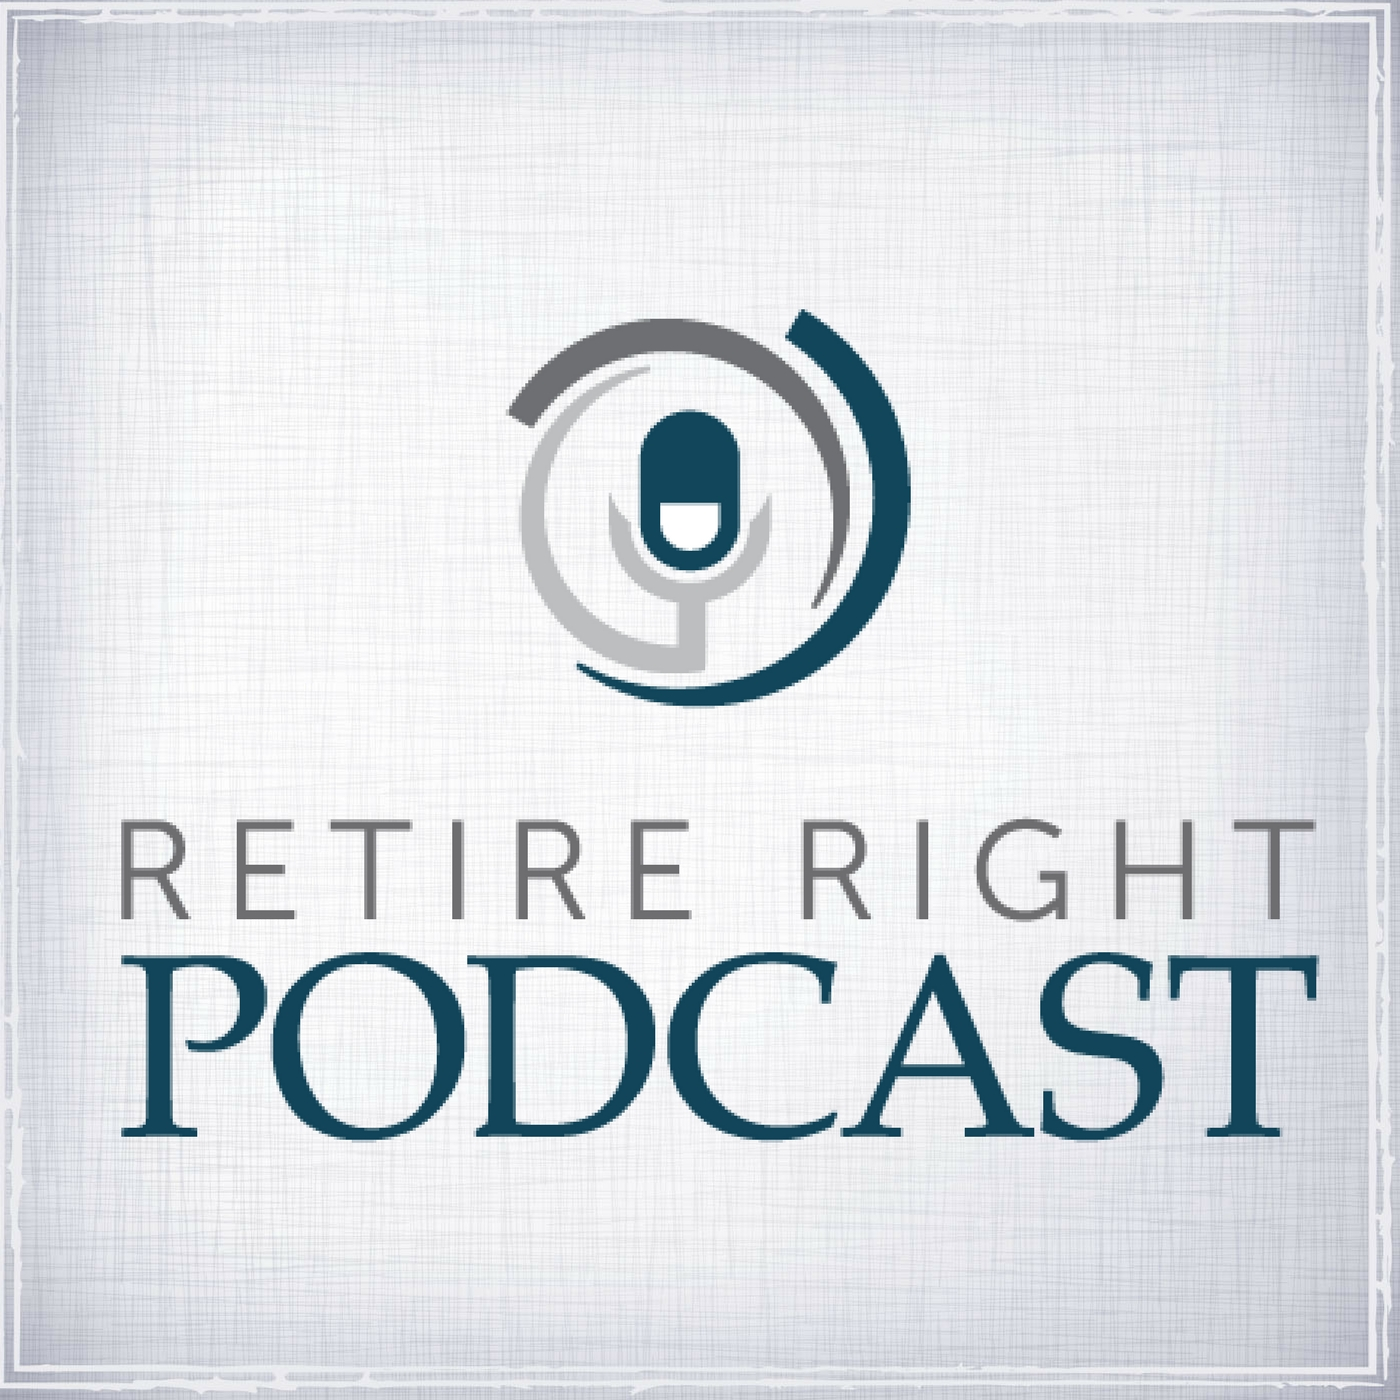 Episode 41 - Everything You Didn't Know About Long-Term Care with Guest Rona Loshak